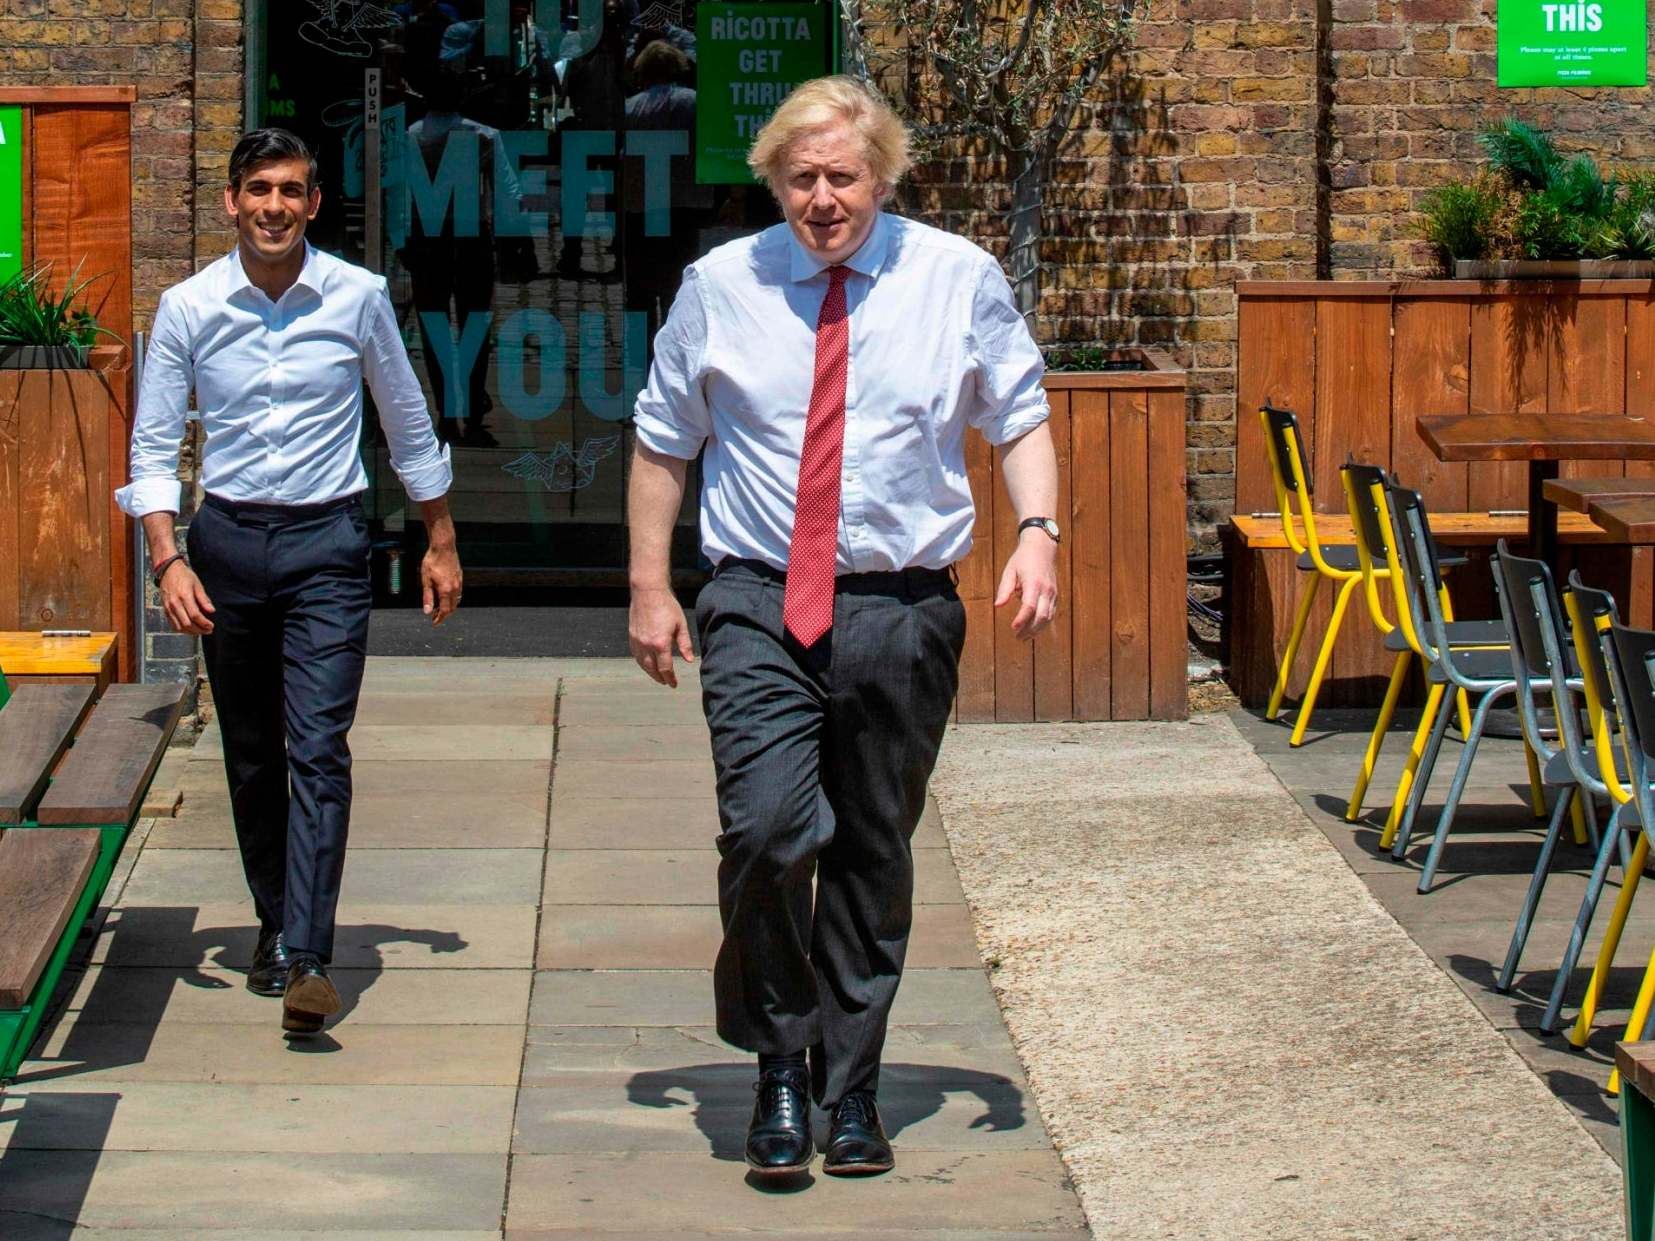 Opinion: Boris Johnson's 'build' speech was disastrously timed. Now all eyes are on Rishi Sunak